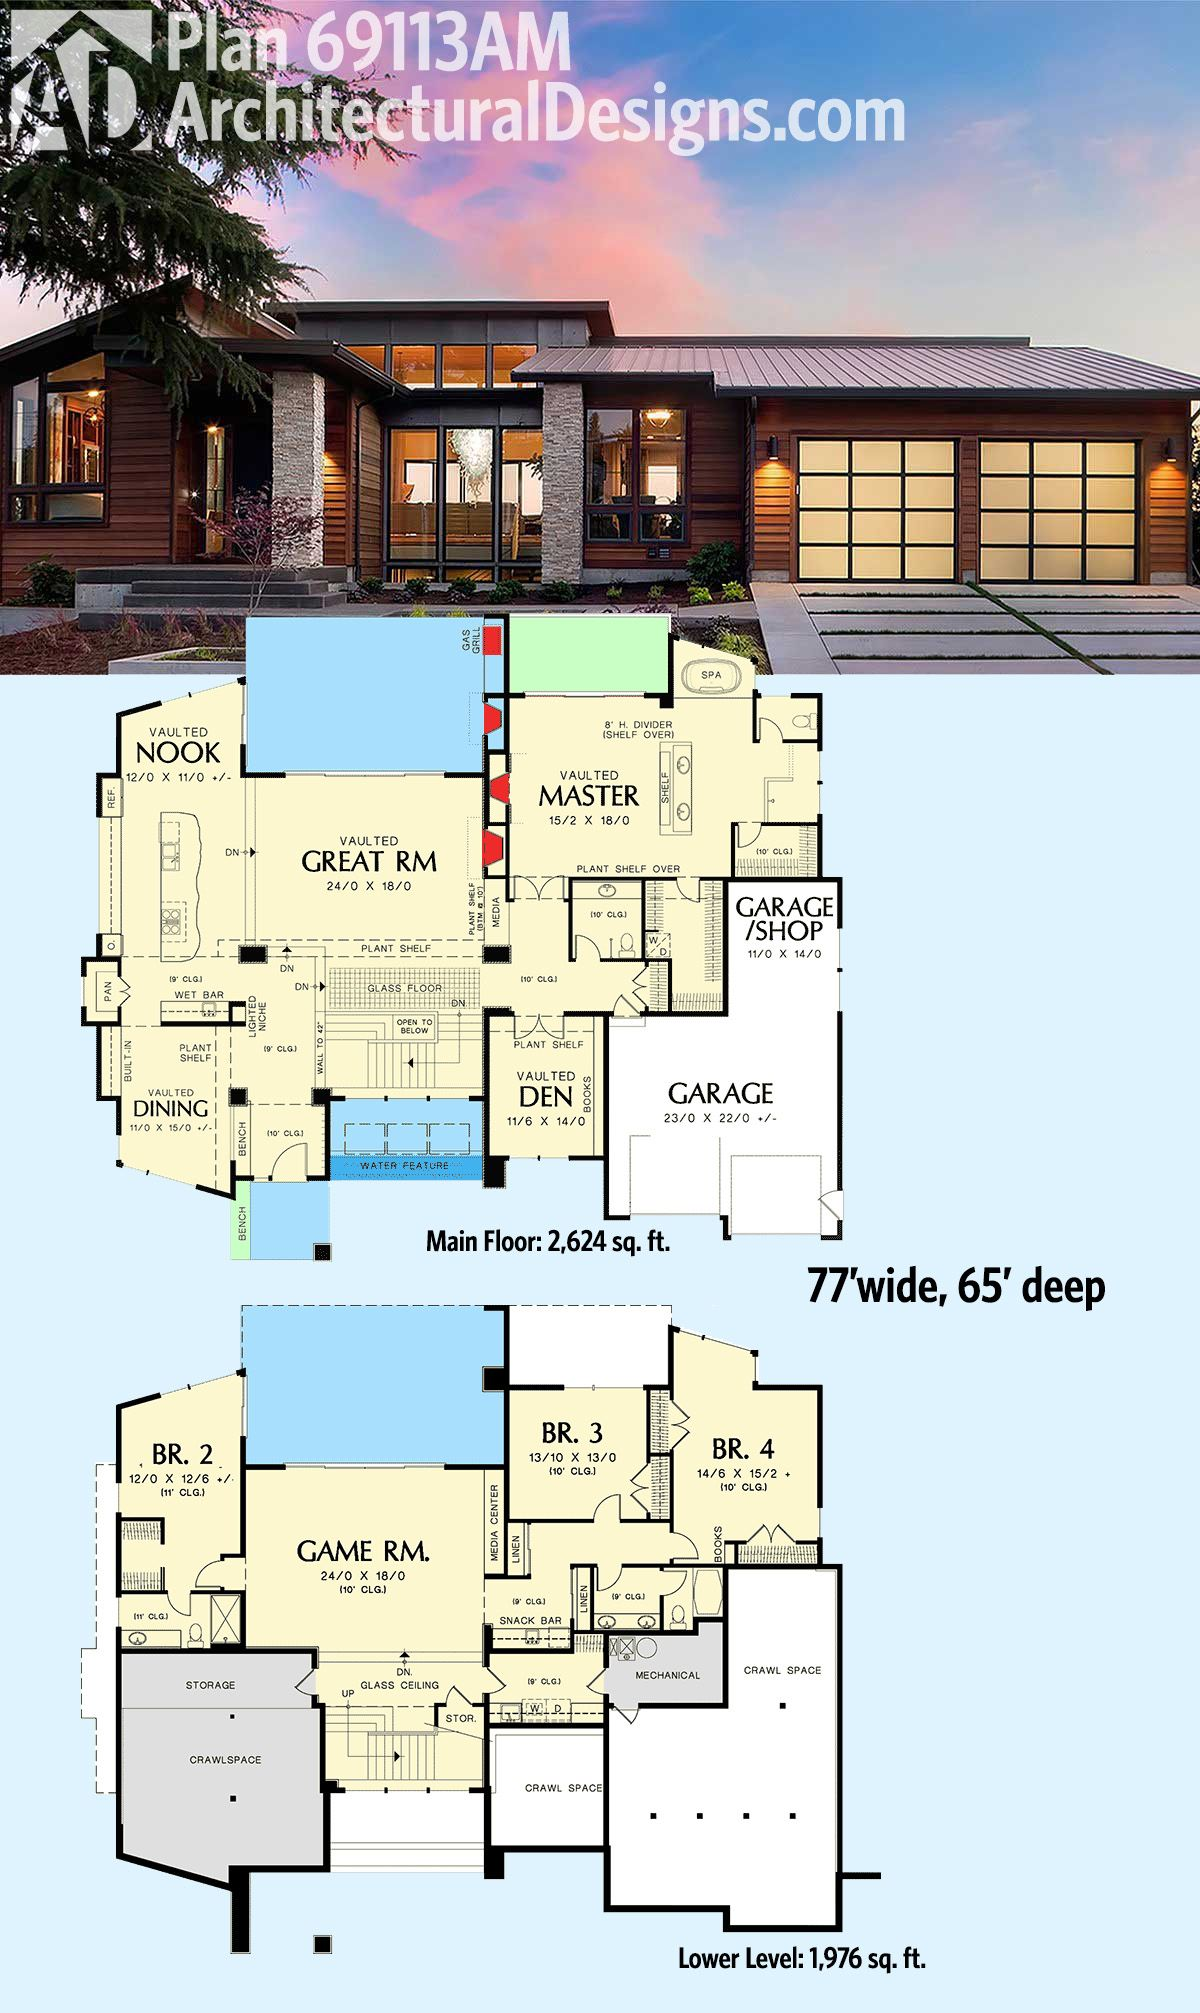 Superb Architectural Designs Modern House Plan 69113AM Gives You Over 4,000 Square  Feet Of Living Spread Across